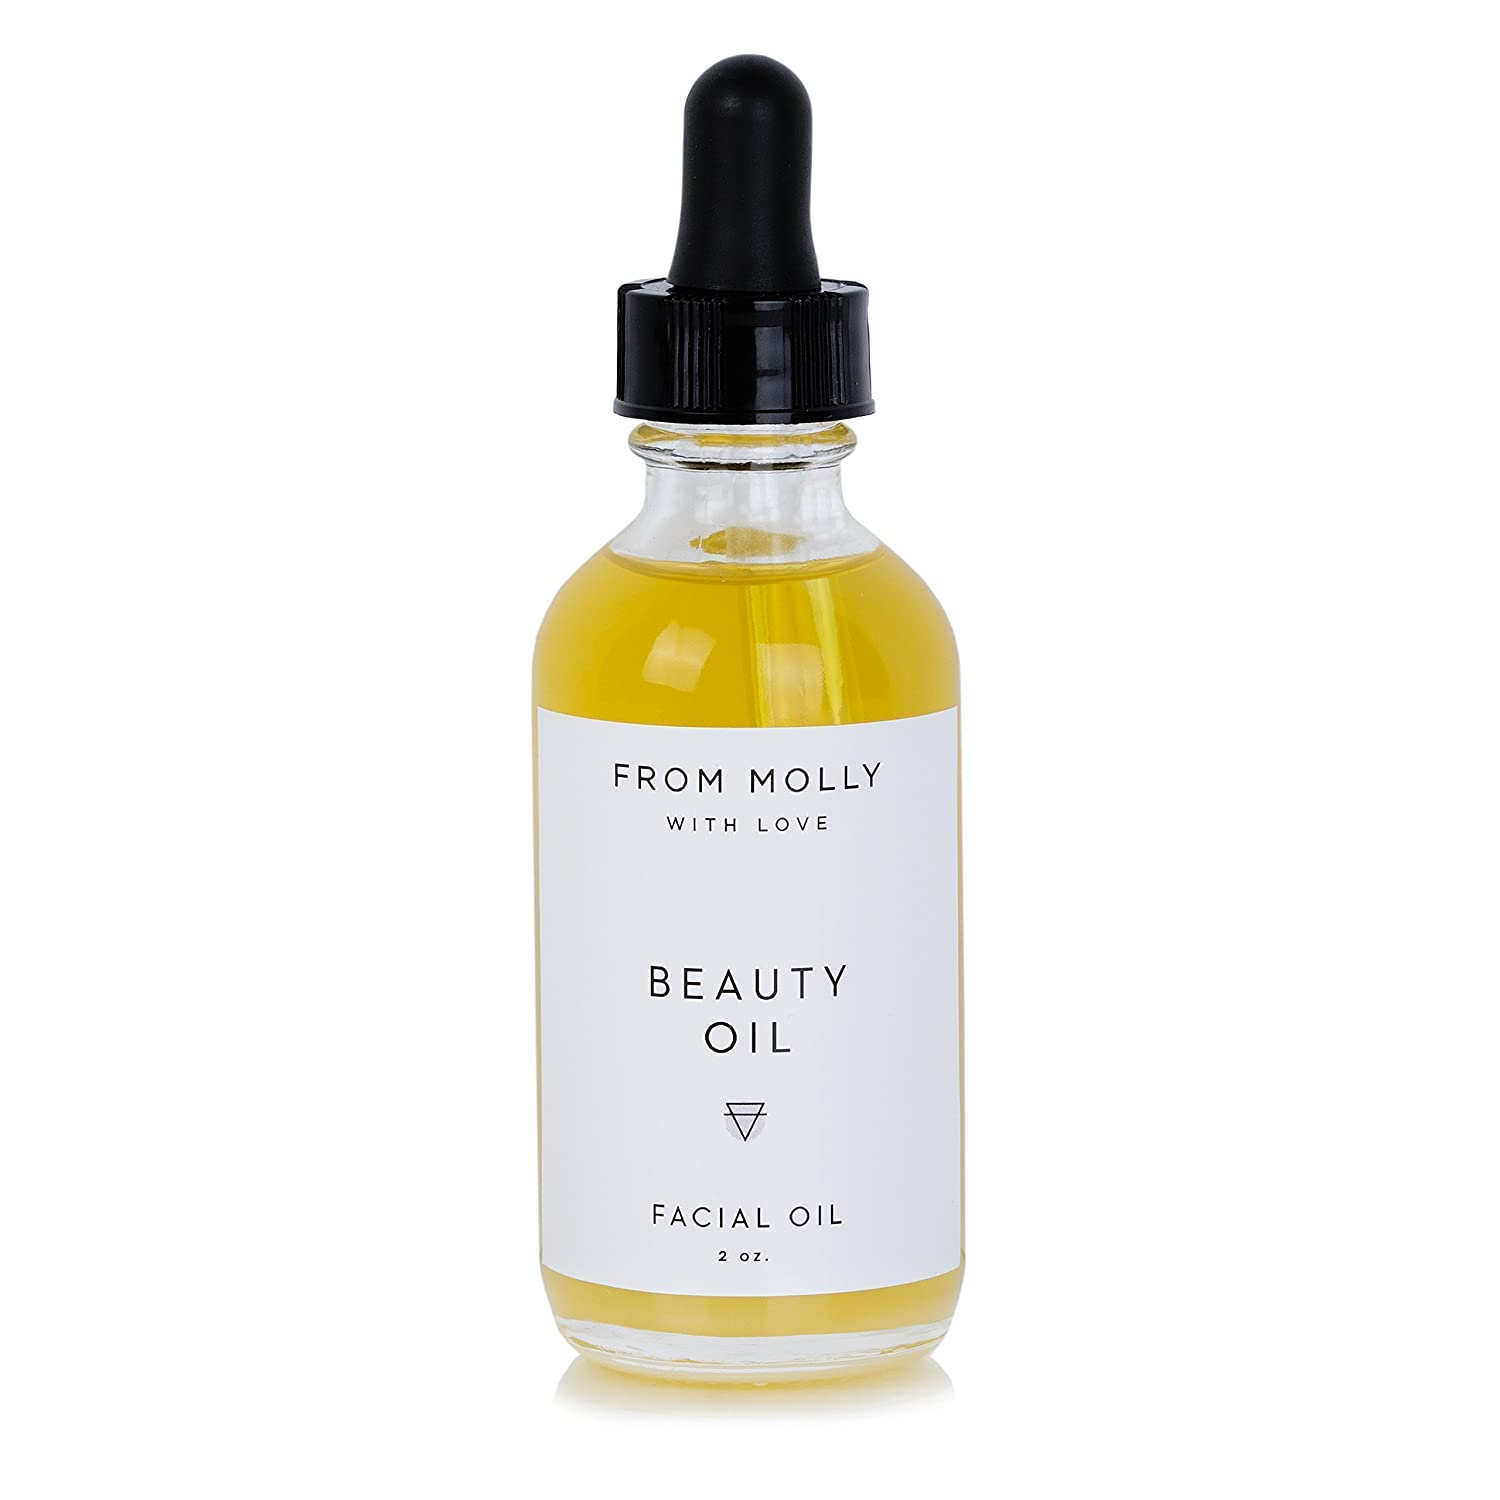 Organic Beauty Oil by From Molly with Love